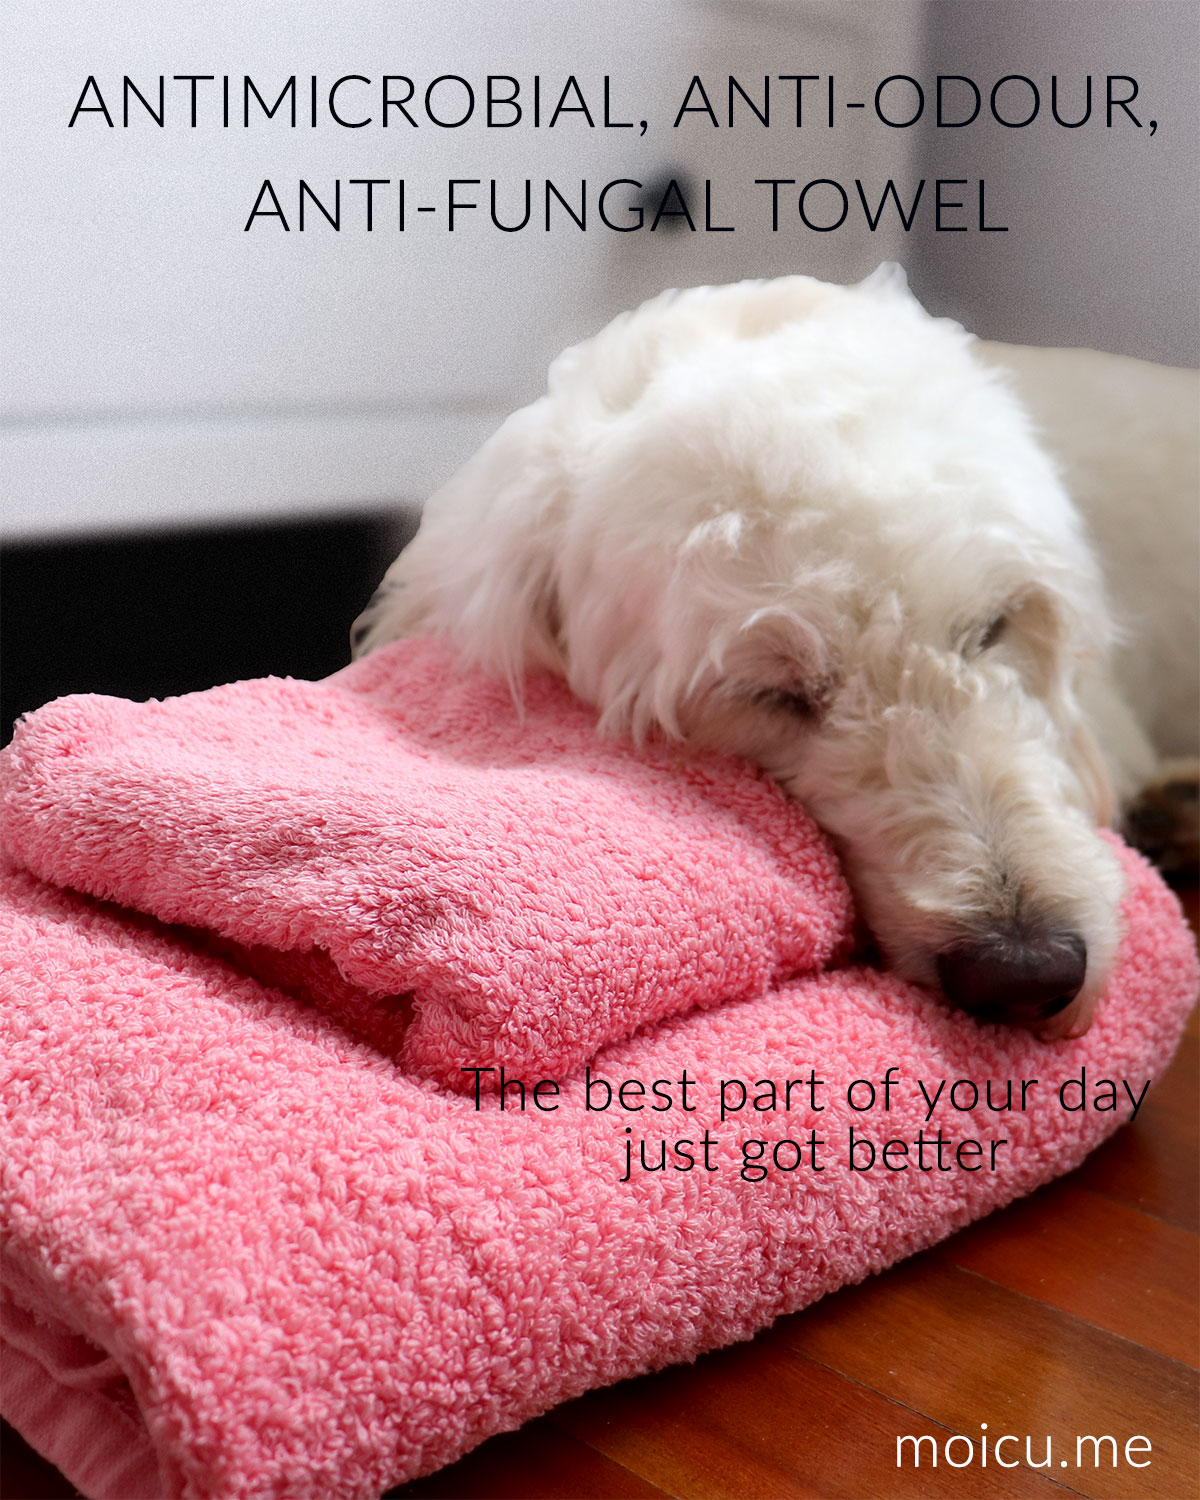 Antibacterial towel protected by Silver ions